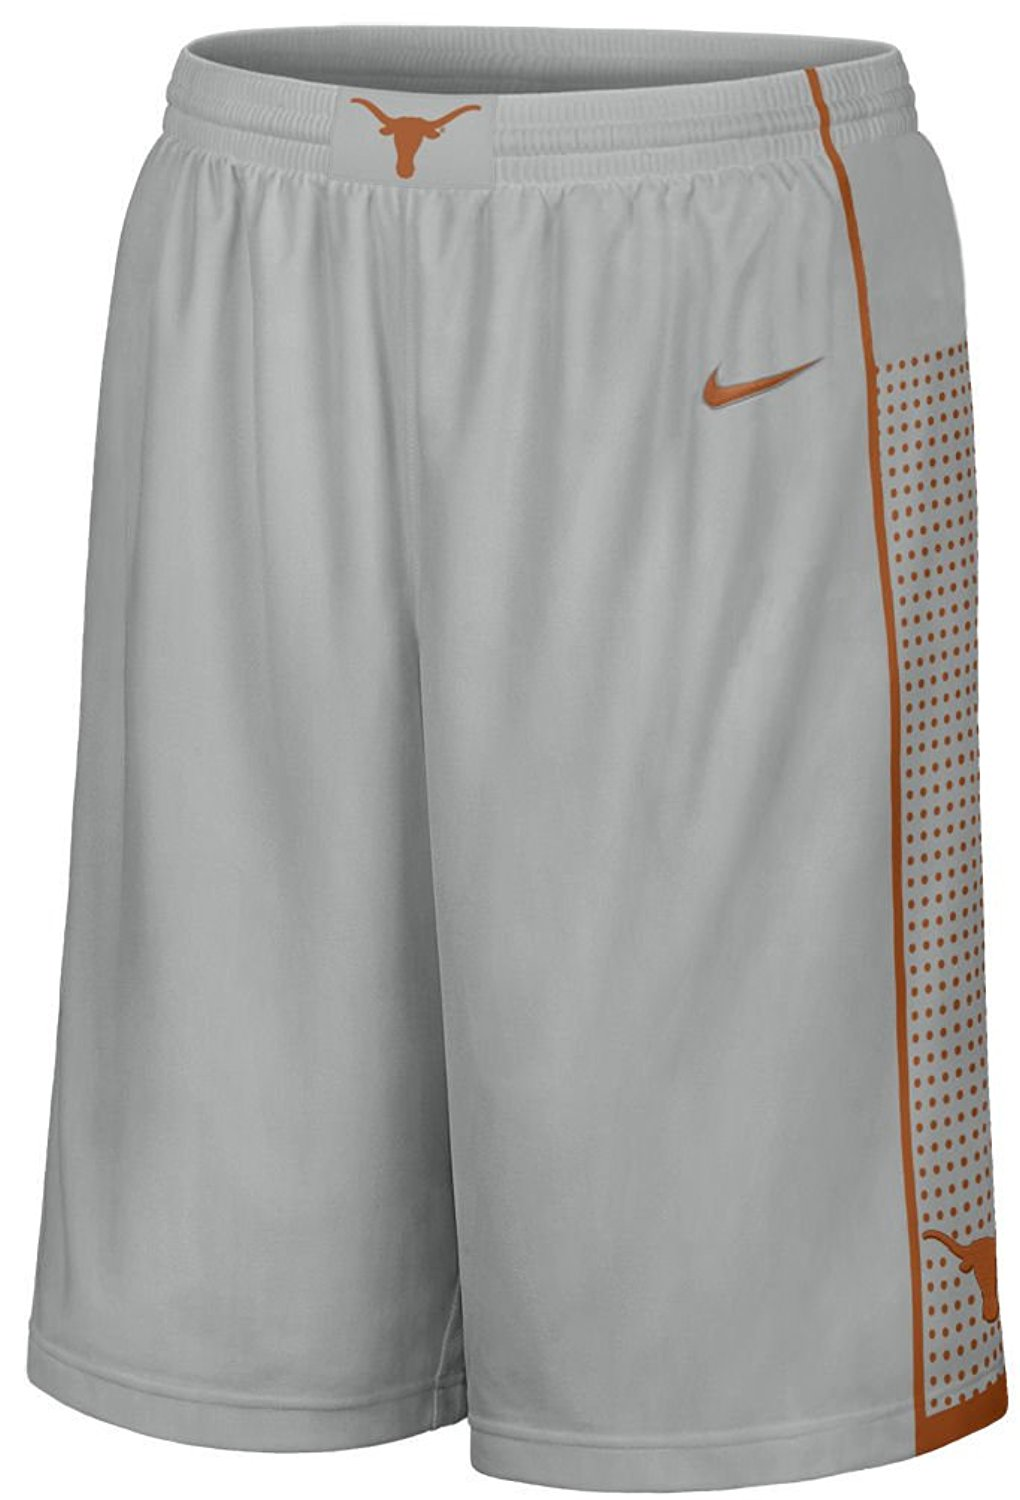 e46f6ef7edf4f Get Quotations · Texas Longhorns Grey 12 Inseam Embroidered Player  Basketball Short By Nike